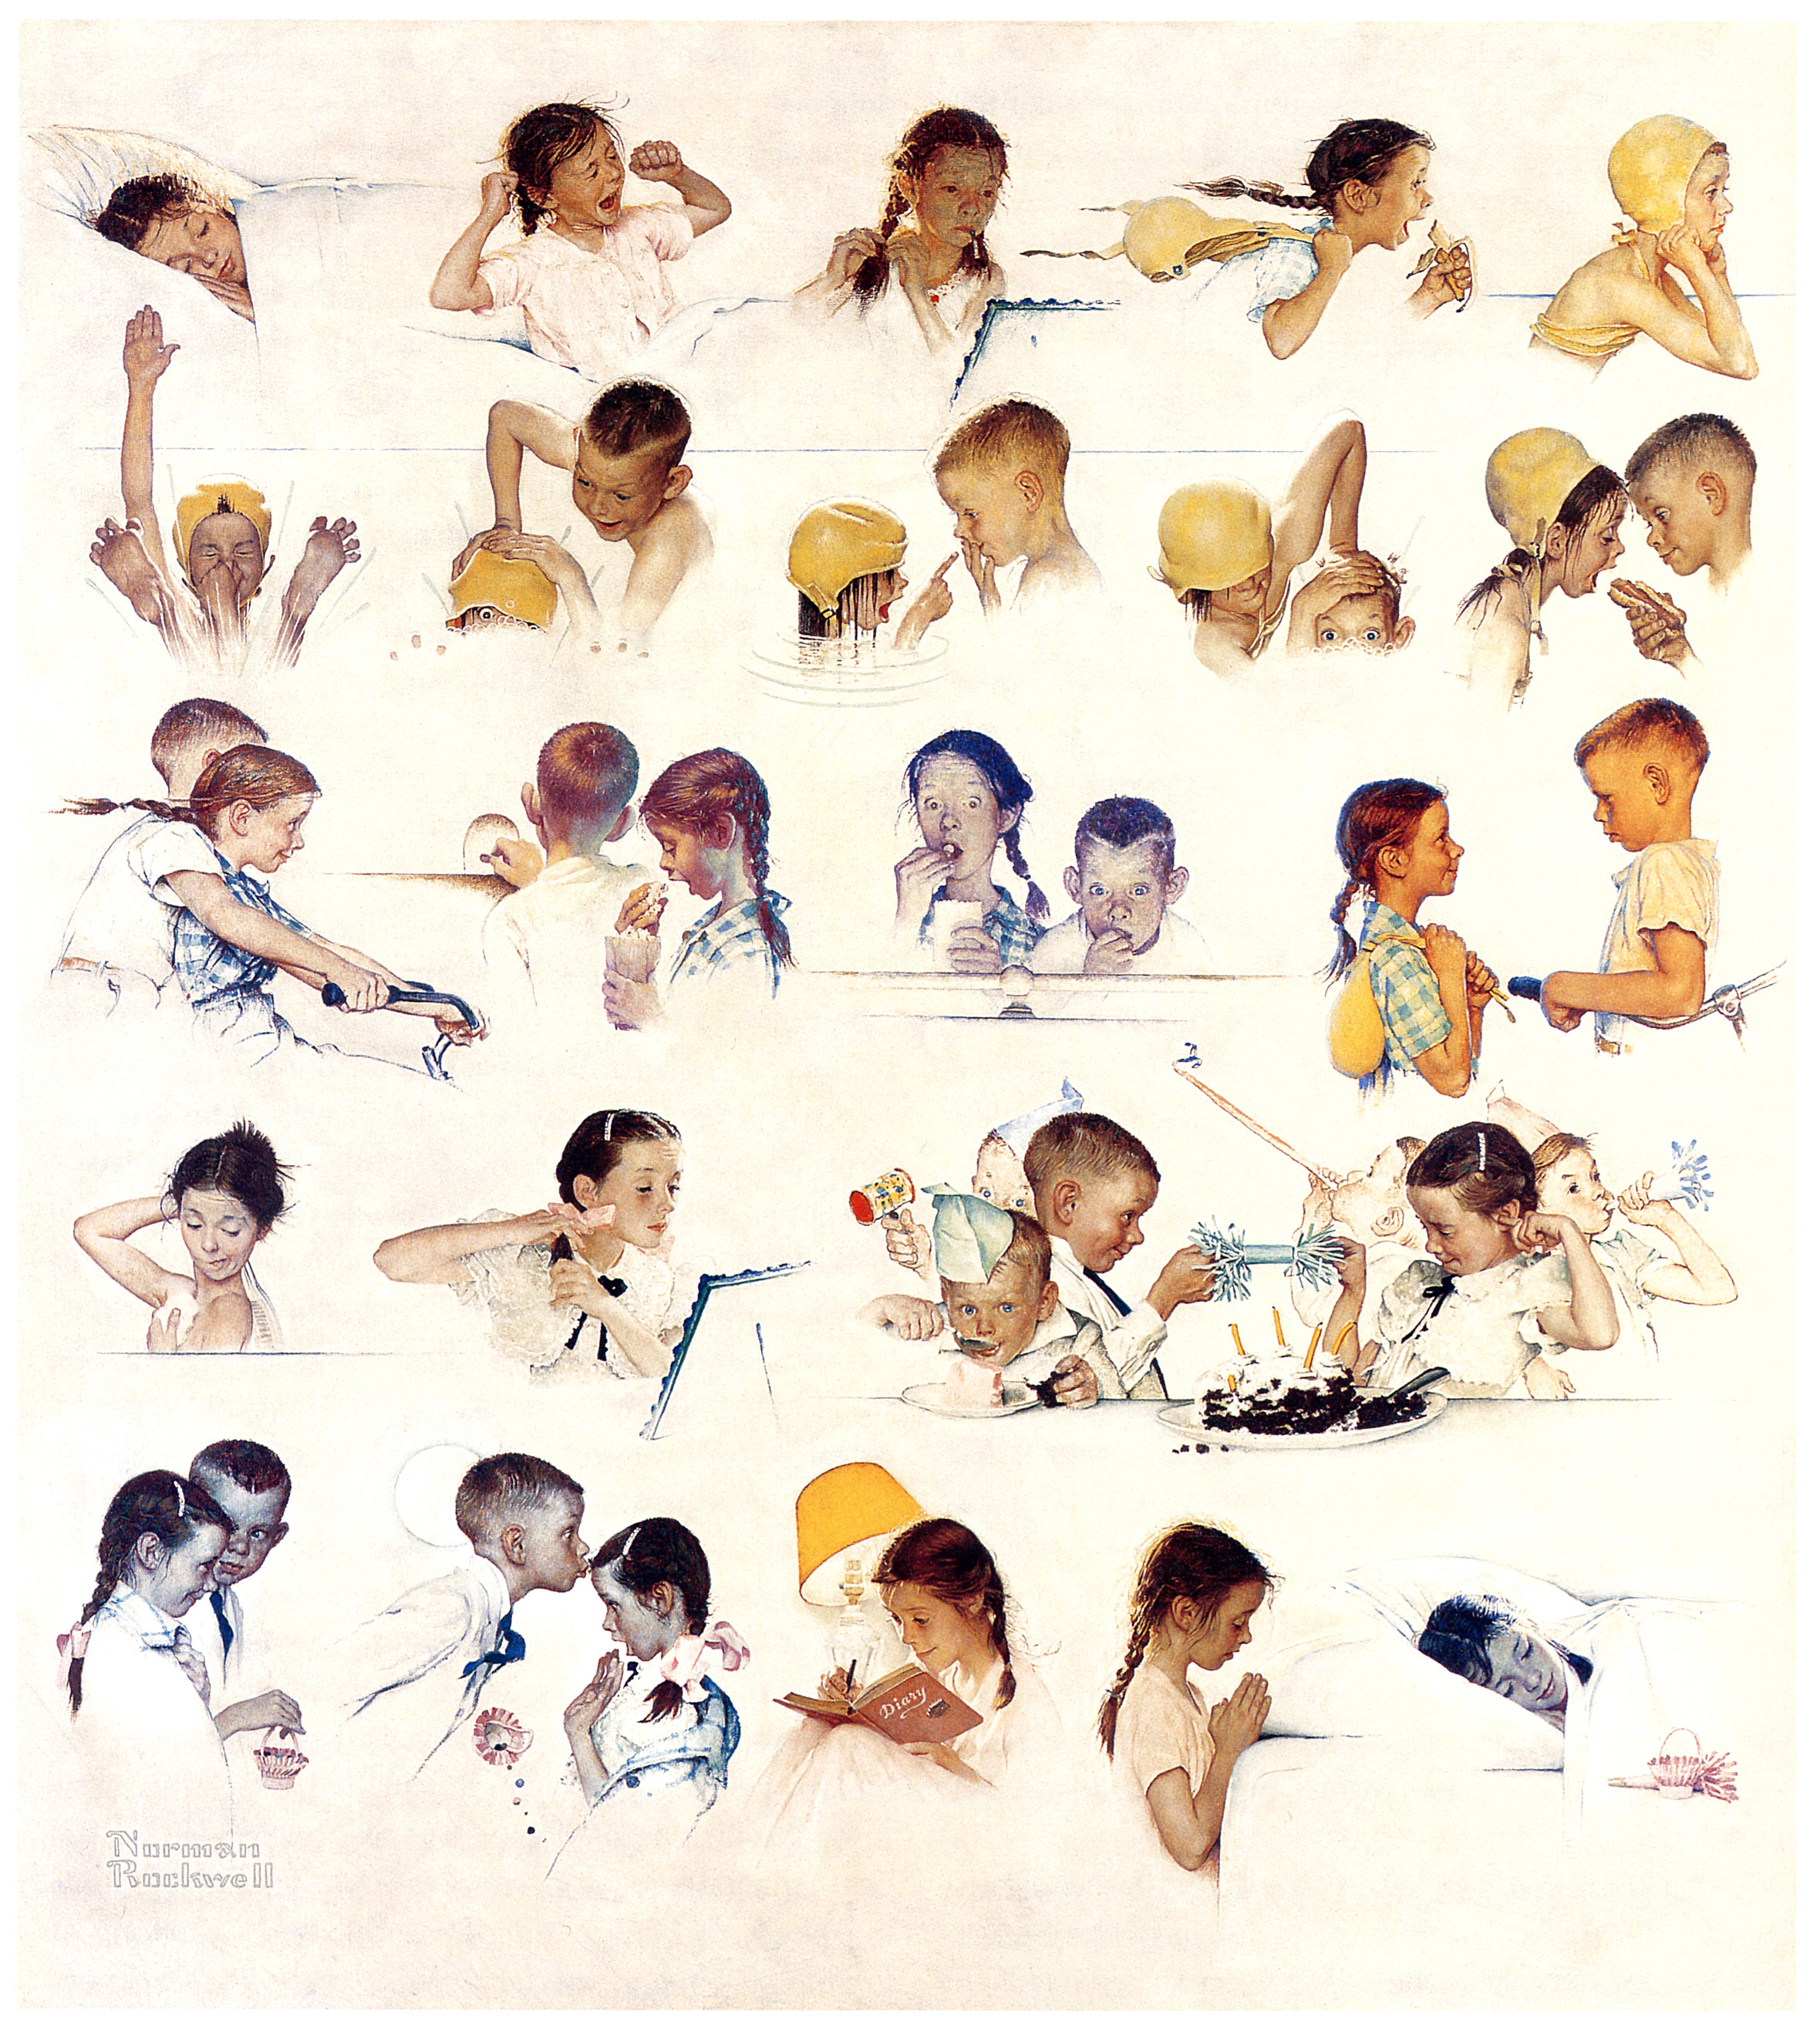 1952... 'A Day in the Life of a Little Girl' - by Norman Rockwell